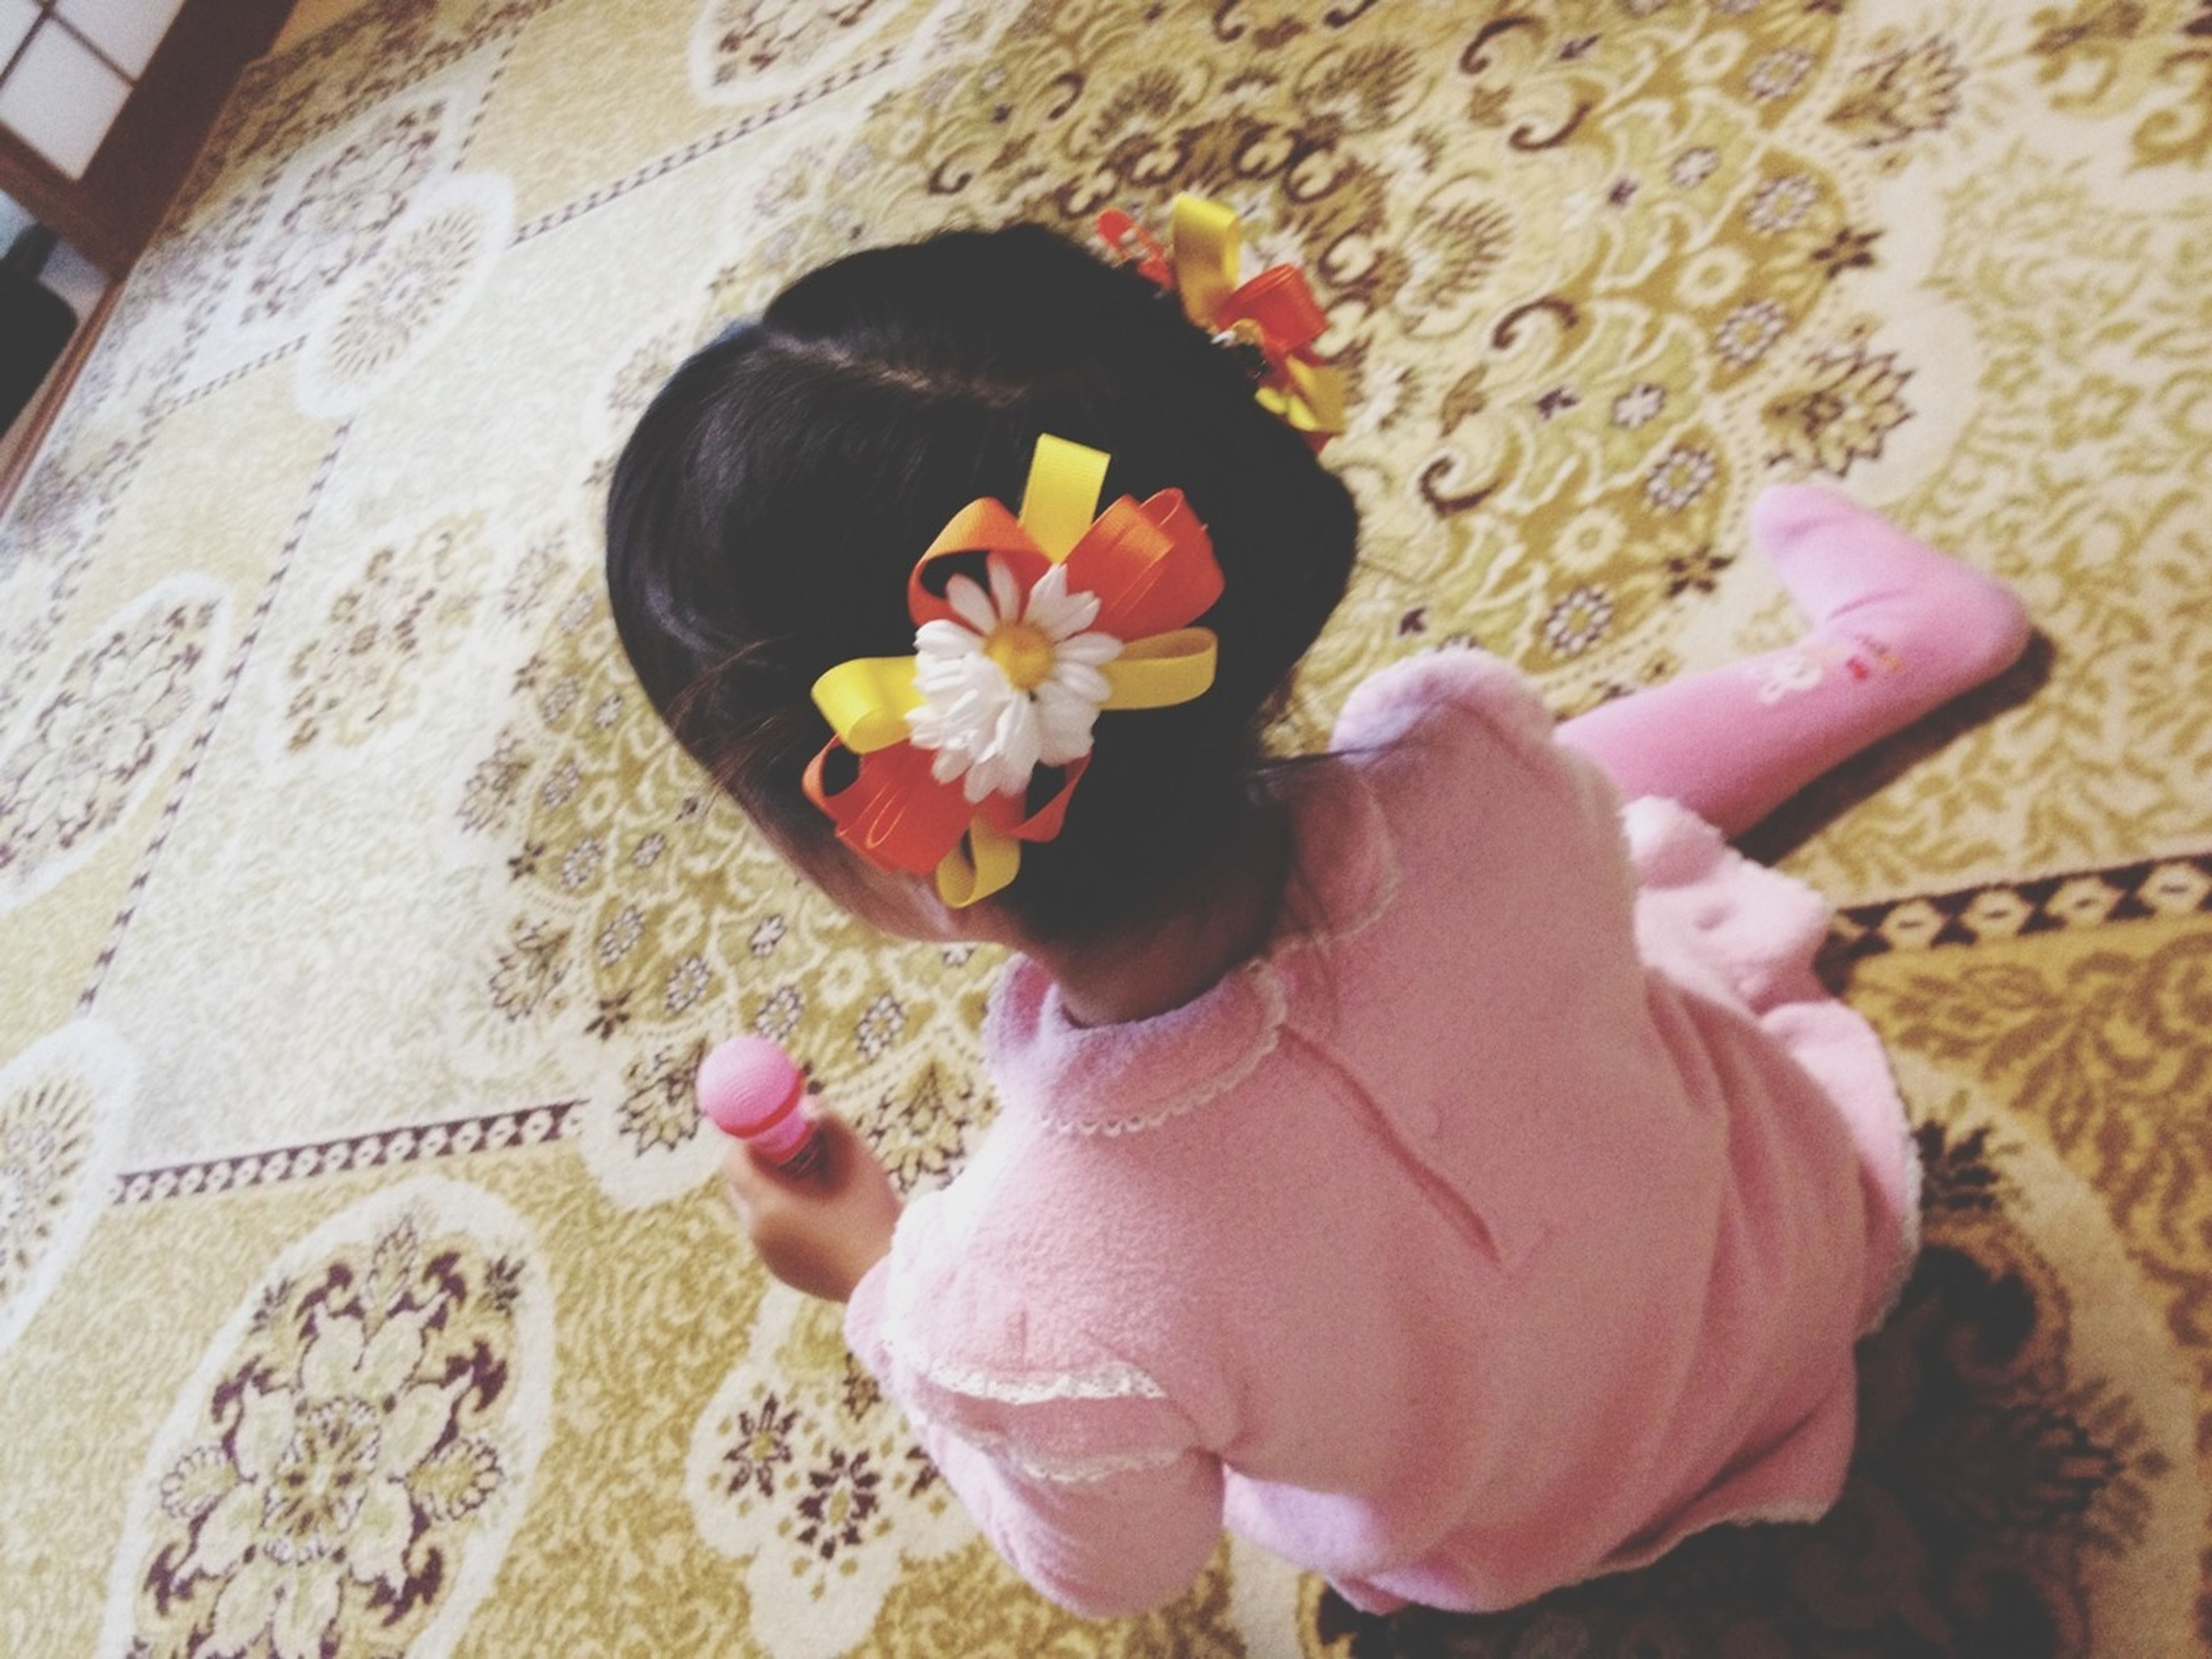 flower, lifestyles, leisure activity, holding, casual clothing, high angle view, childhood, person, girls, pink color, freshness, elementary age, petal, indoors, fragility, standing